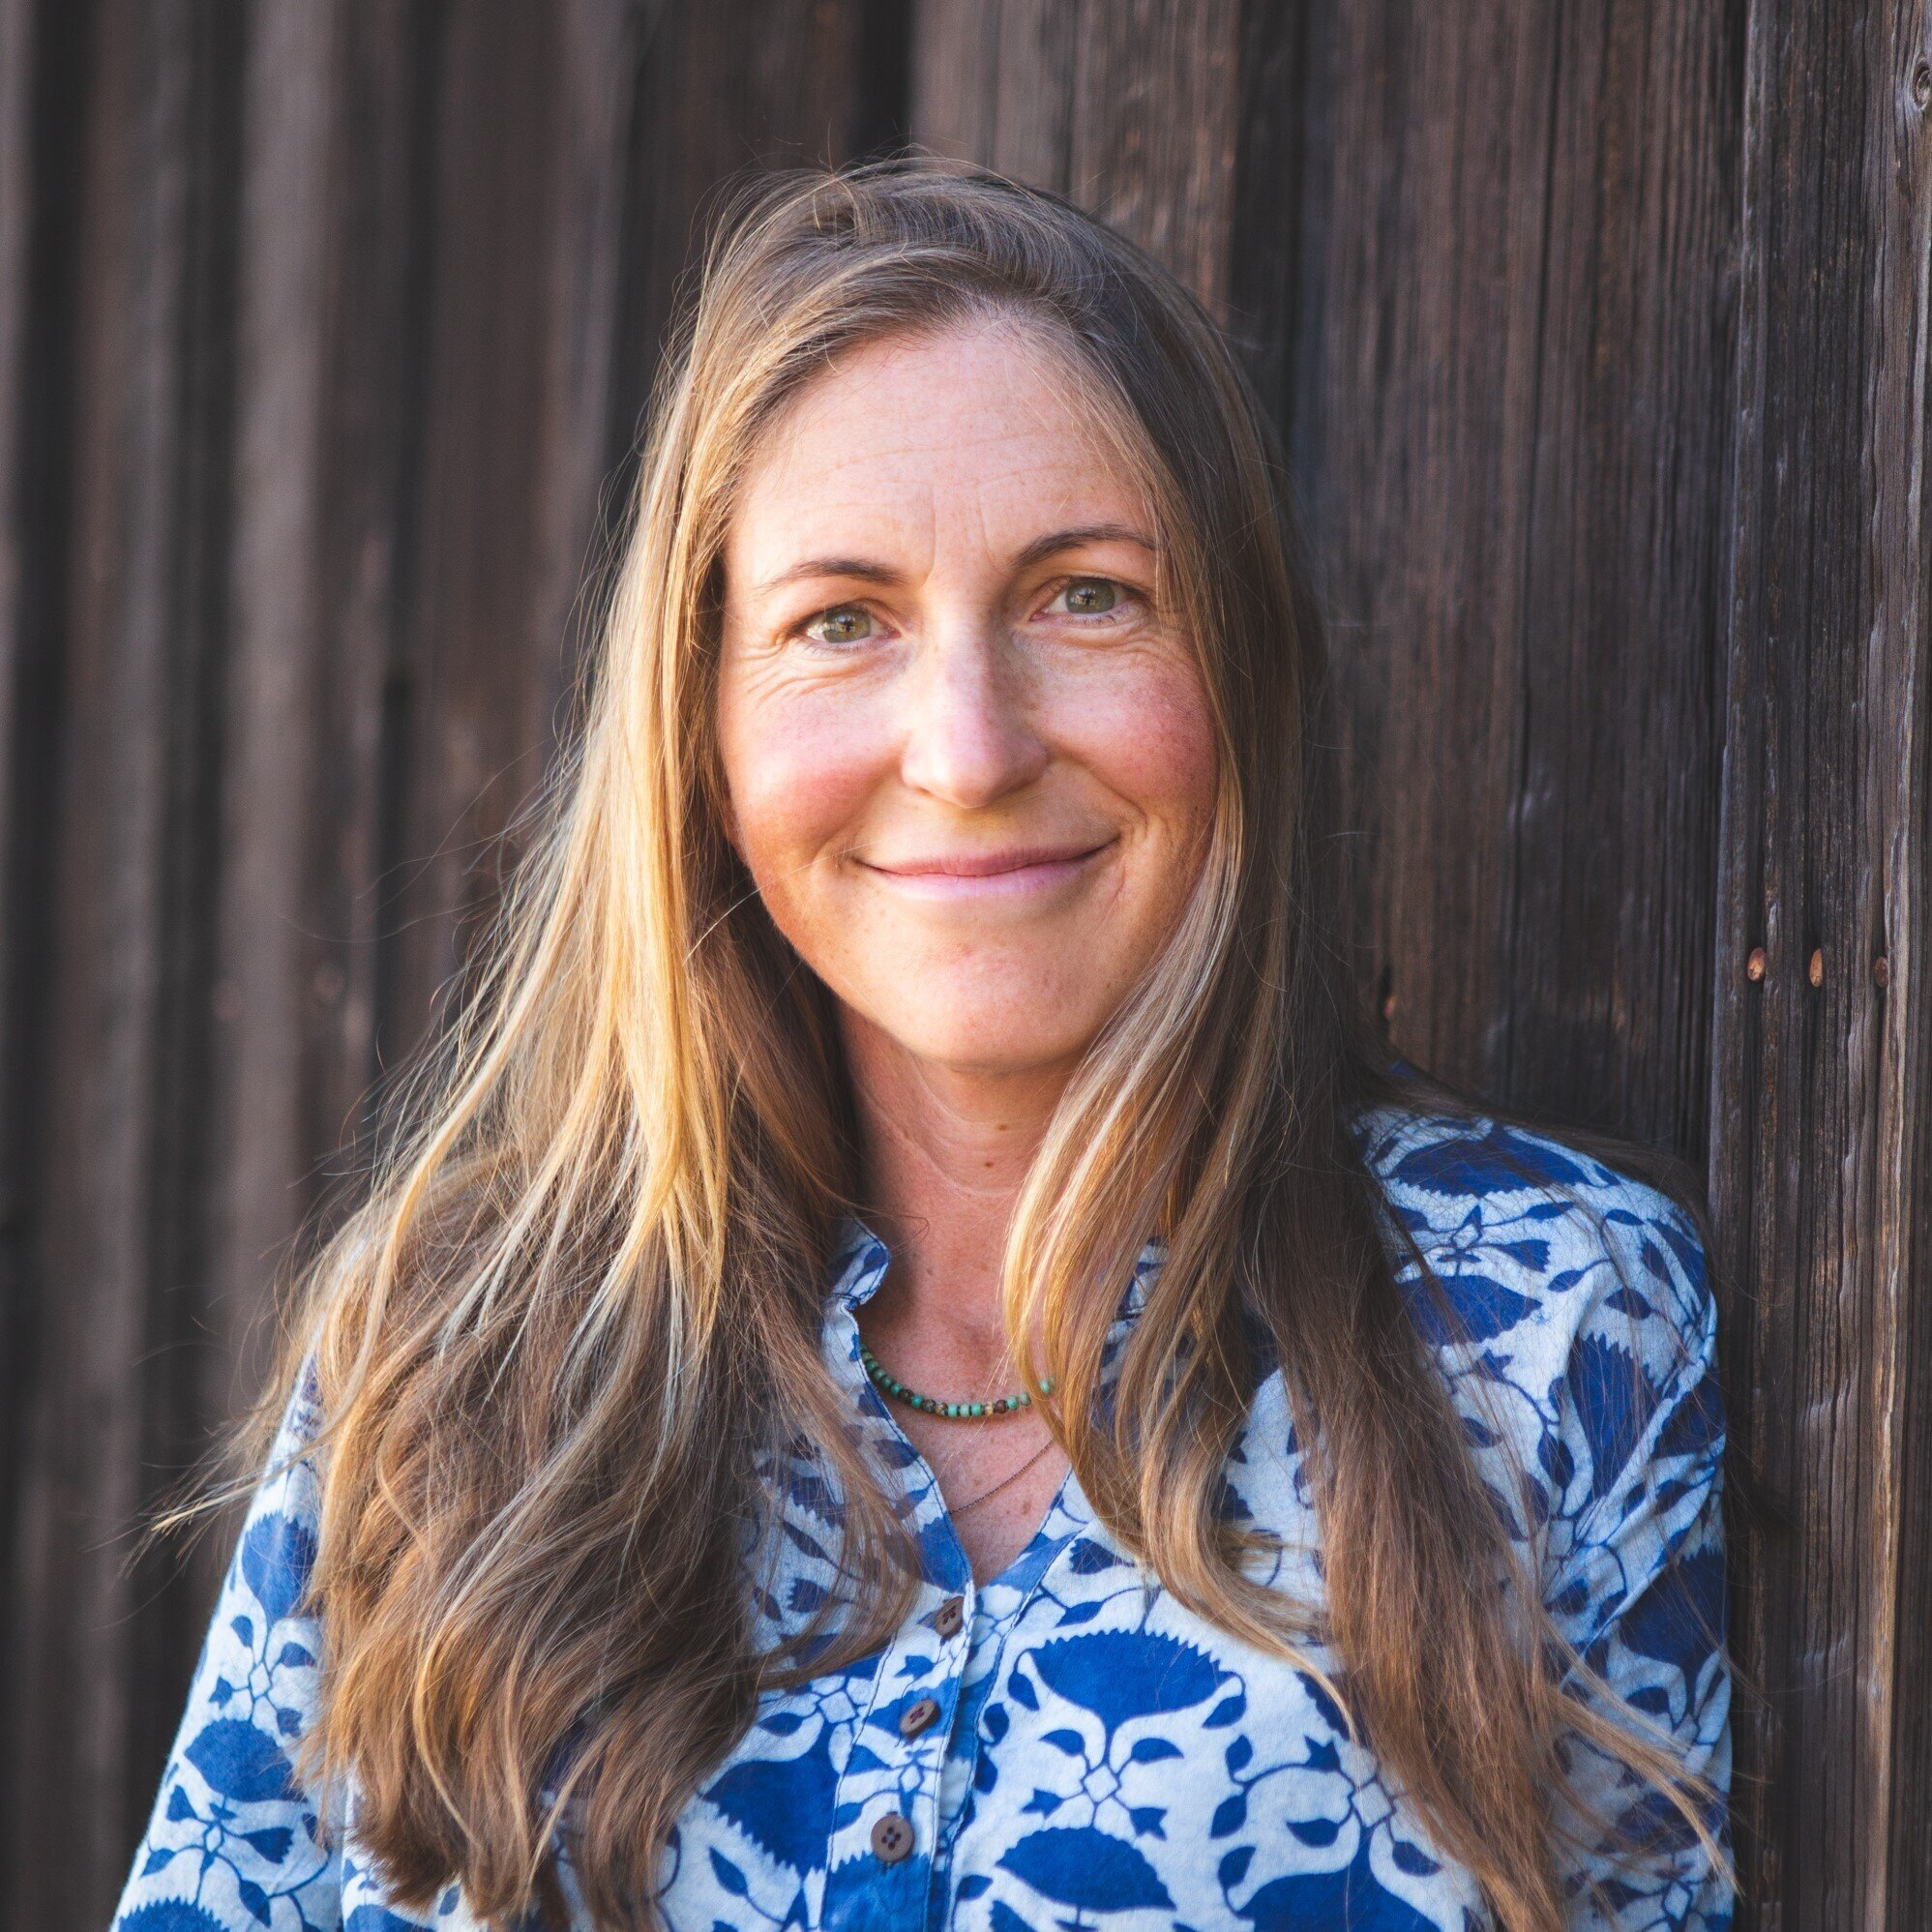 Kaye Jones |  Farmer, Educator, Mother  The Environment, Deep Ecology, and The Work that Reconnects